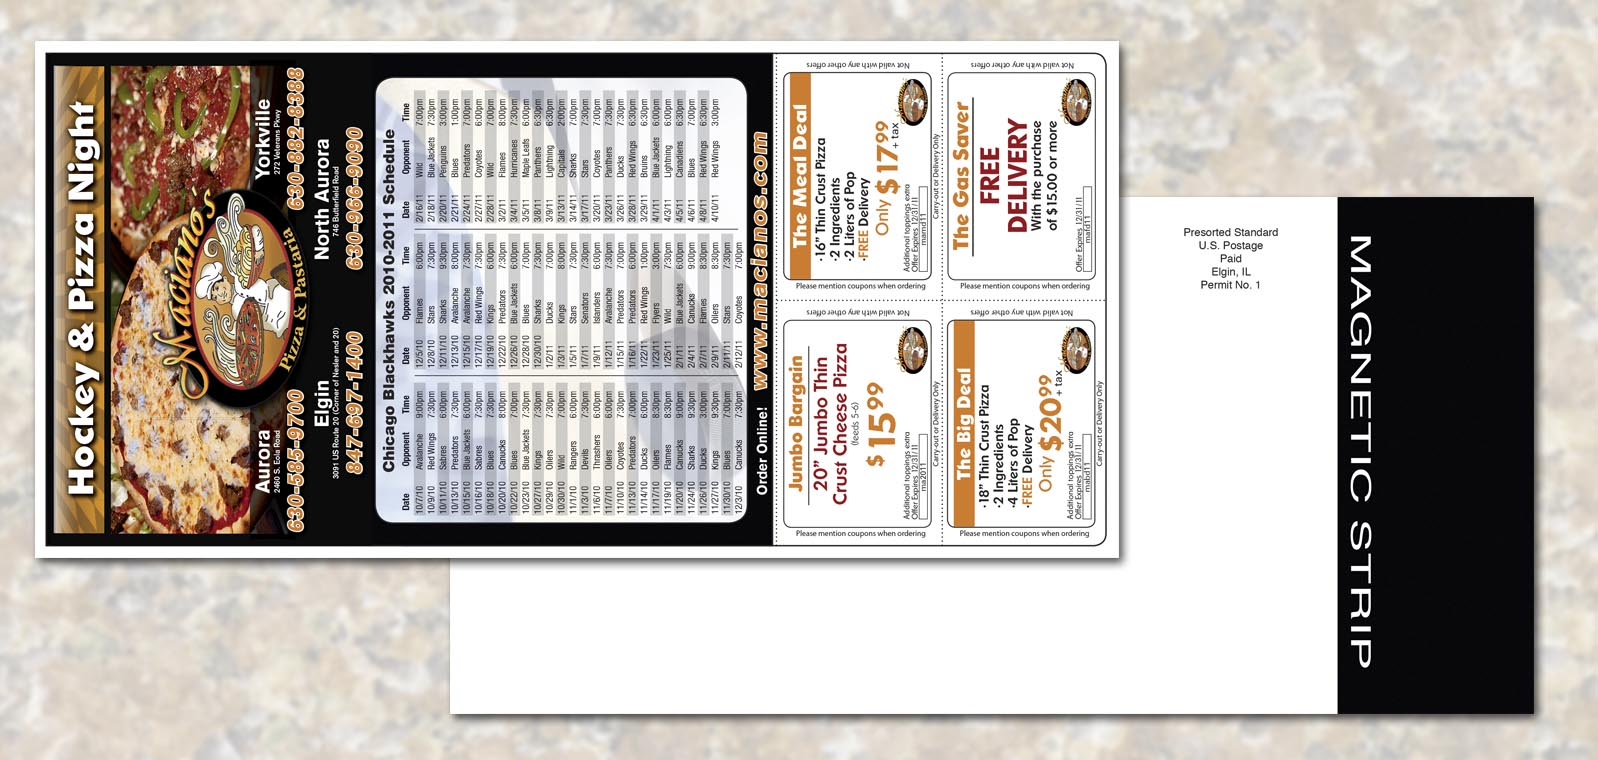 Magnetic Postcard Graphic Design for Macianos Pizza and Pastaria by Roselle Graphic Designer Controlled Color, Inc.